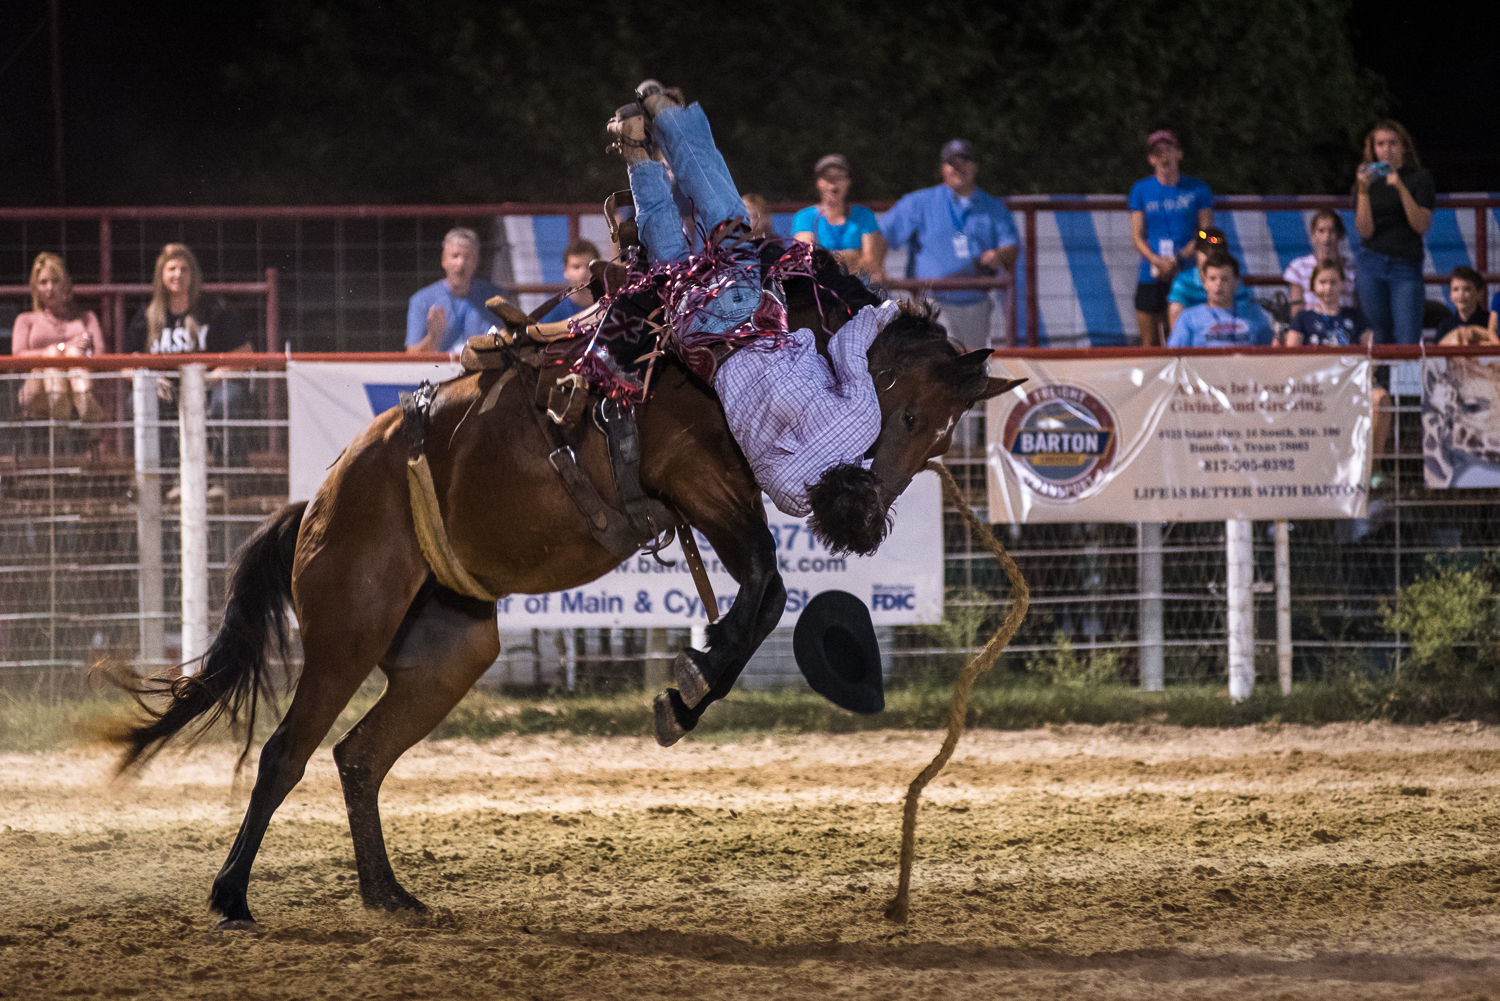 © Ayash Basu. Broncs have exceptional strength and agility, and even an eight second ride takes immense toll on a cowboy's body. A money-winning ride involves more than brute strength as technique and timing account a lot for points. Bandera 2017.